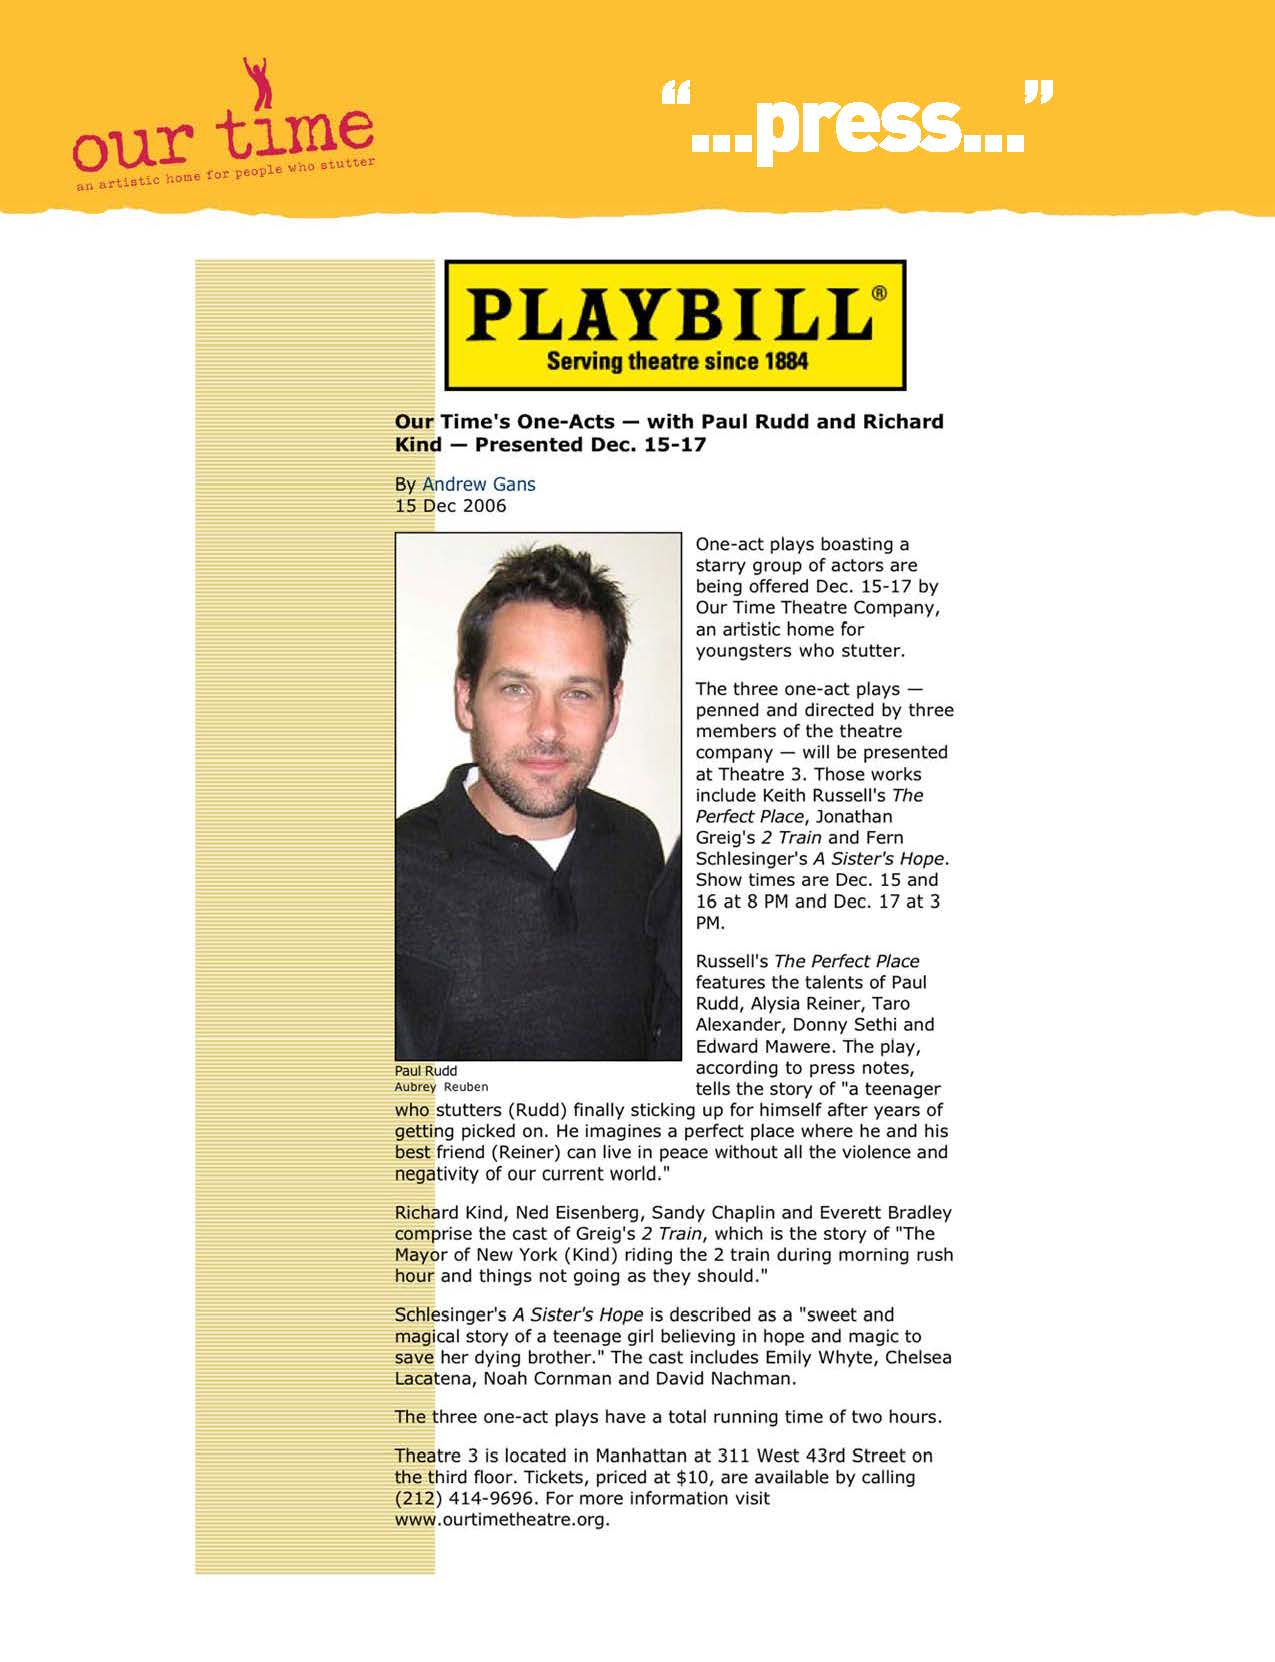 One-Acts with Paul Rudd & Richard Kind